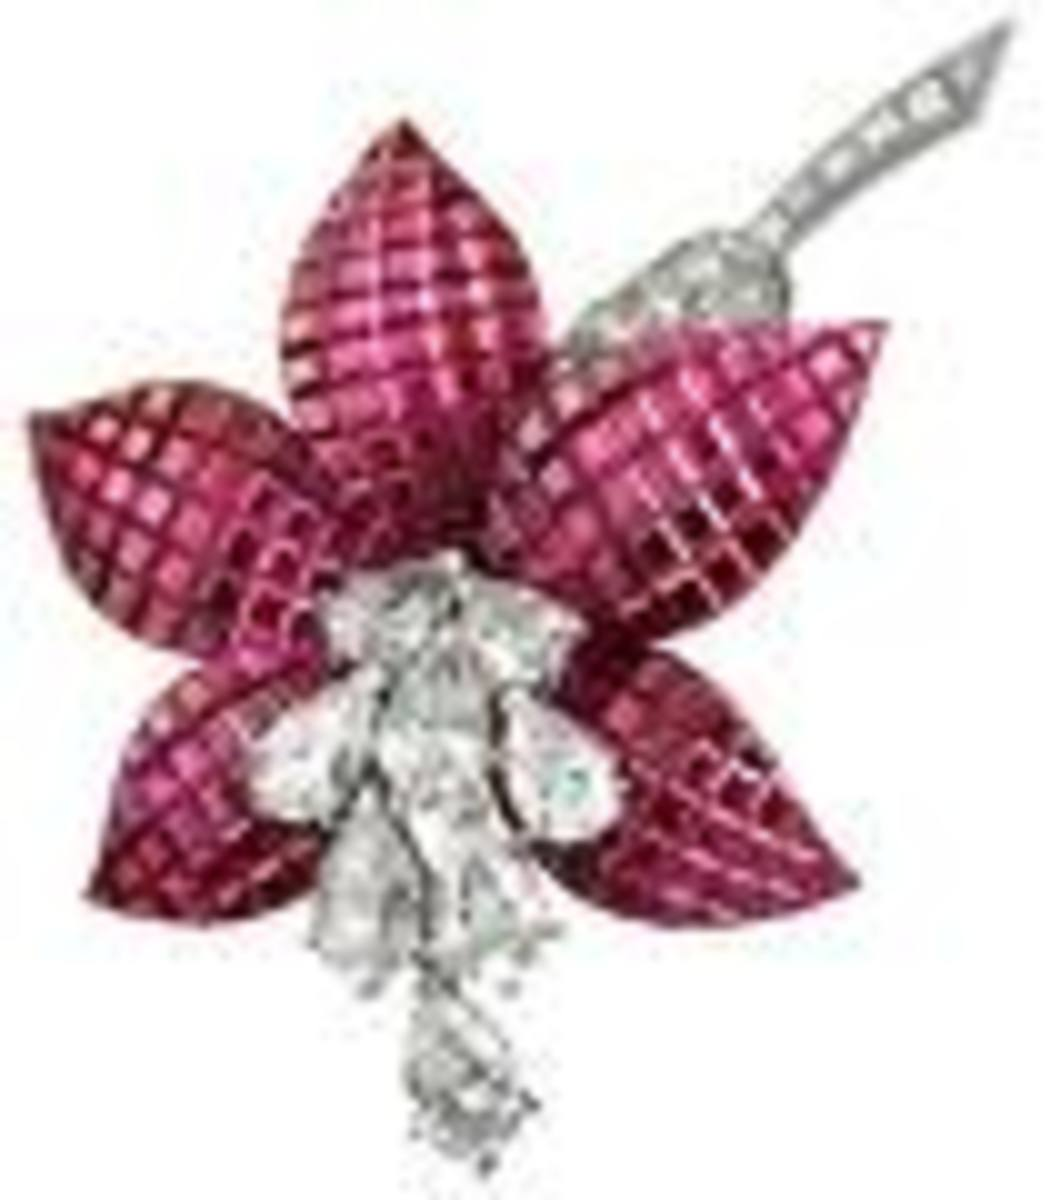 Mystery Setting first introduced by Van Cleef & Arpels - photo courtesy of fccihk.com